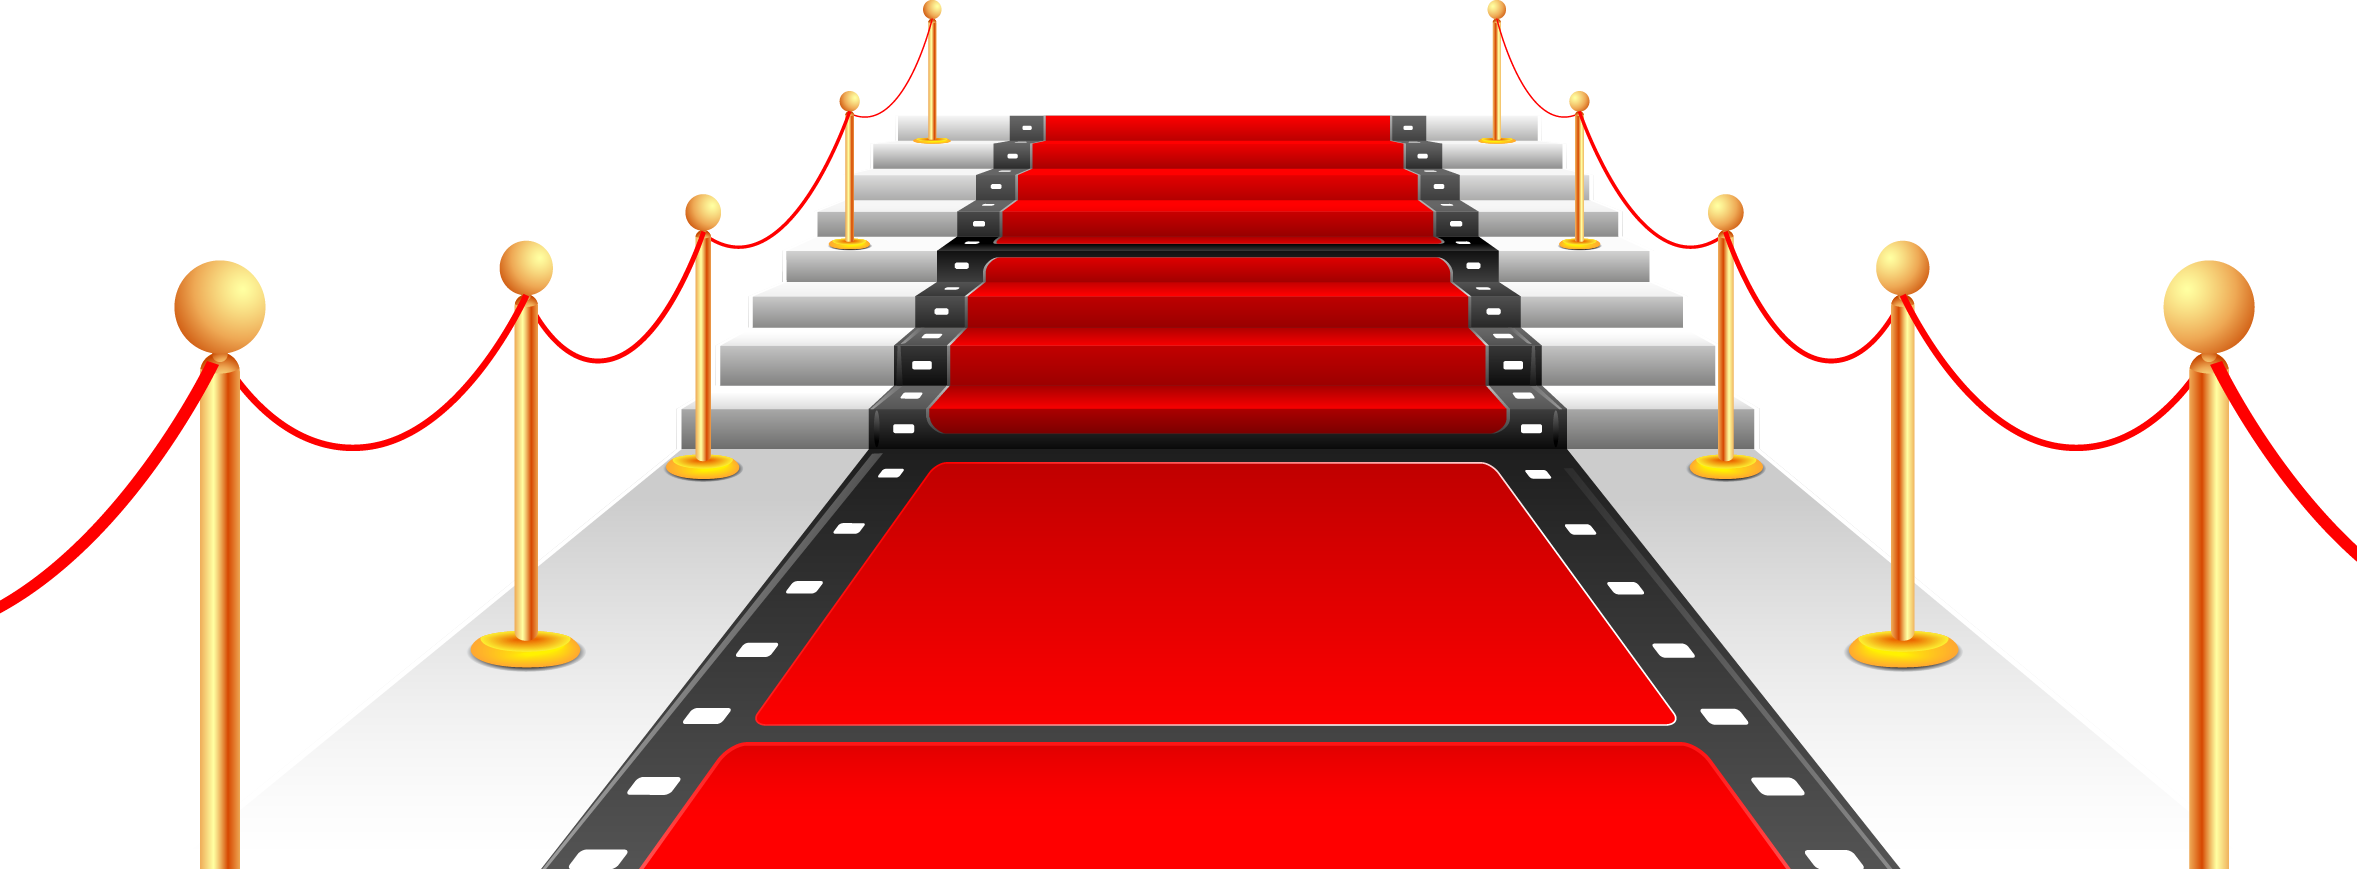 Student clipart carpet. Red png image web